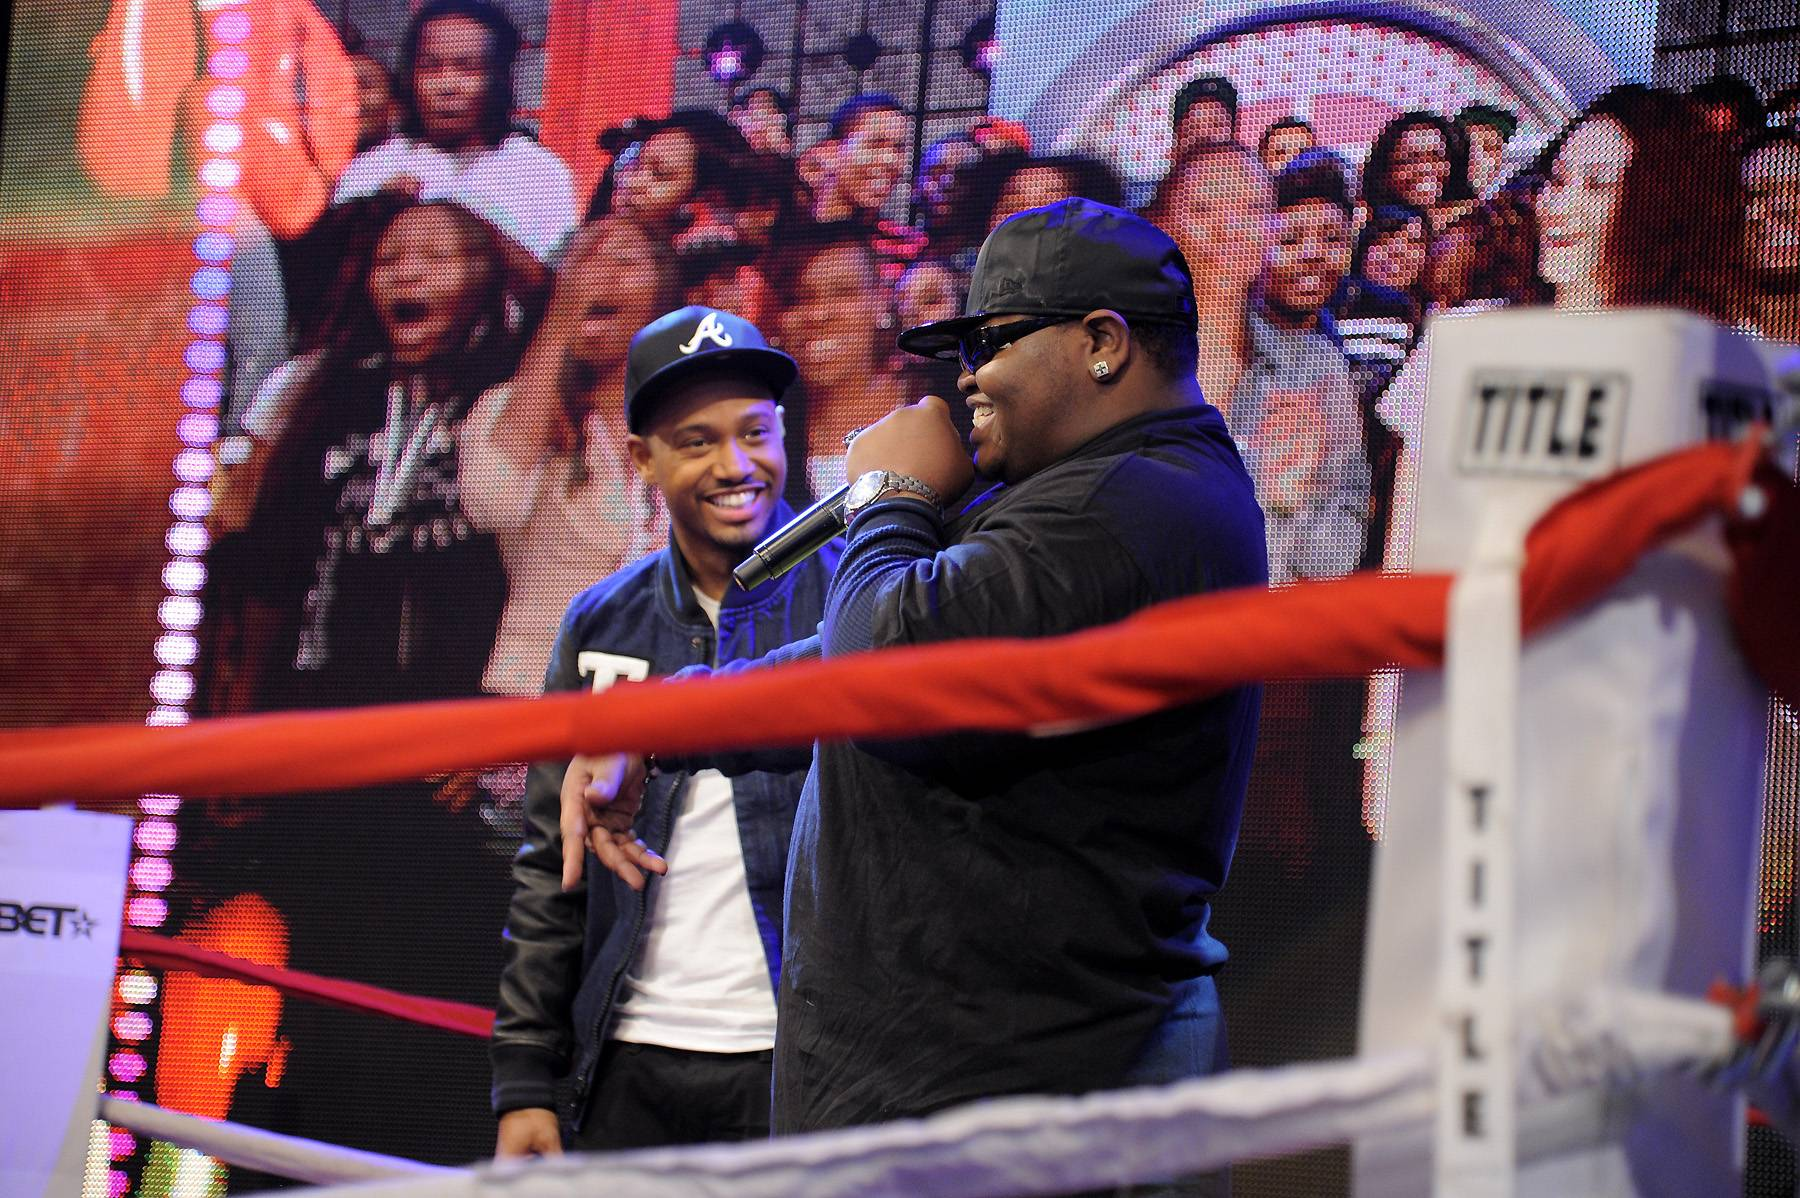 YAGA - Freestyle Friday contestants Syahboy and Relly at 106 & Park, April 6, 2012. (photo: John Ricard / BET)